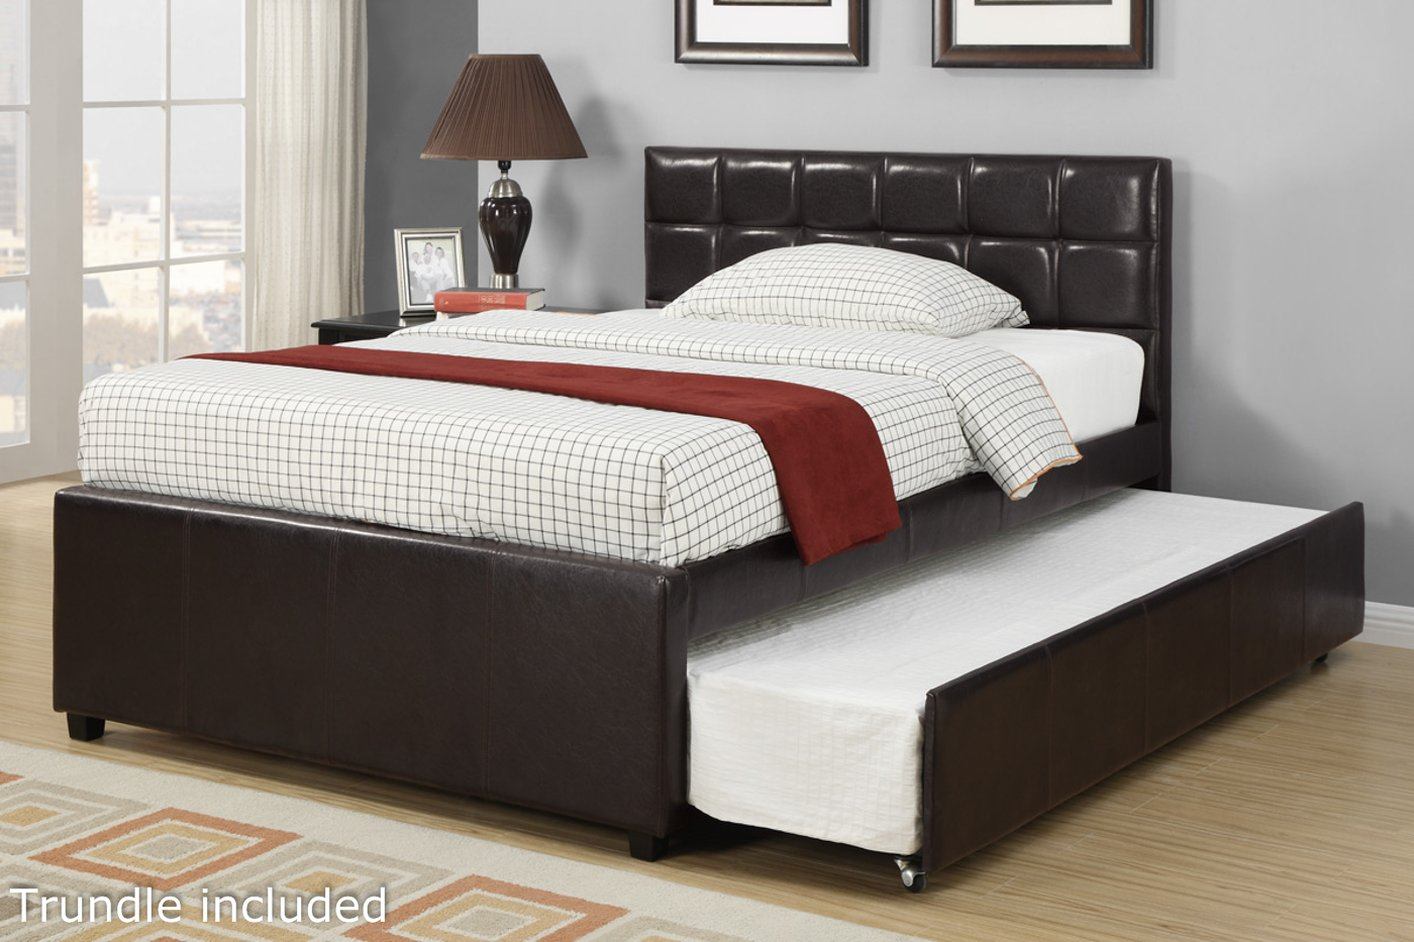 Matrimonio Bed Beda : Poundex f full size bed with trundle in los angeles ca